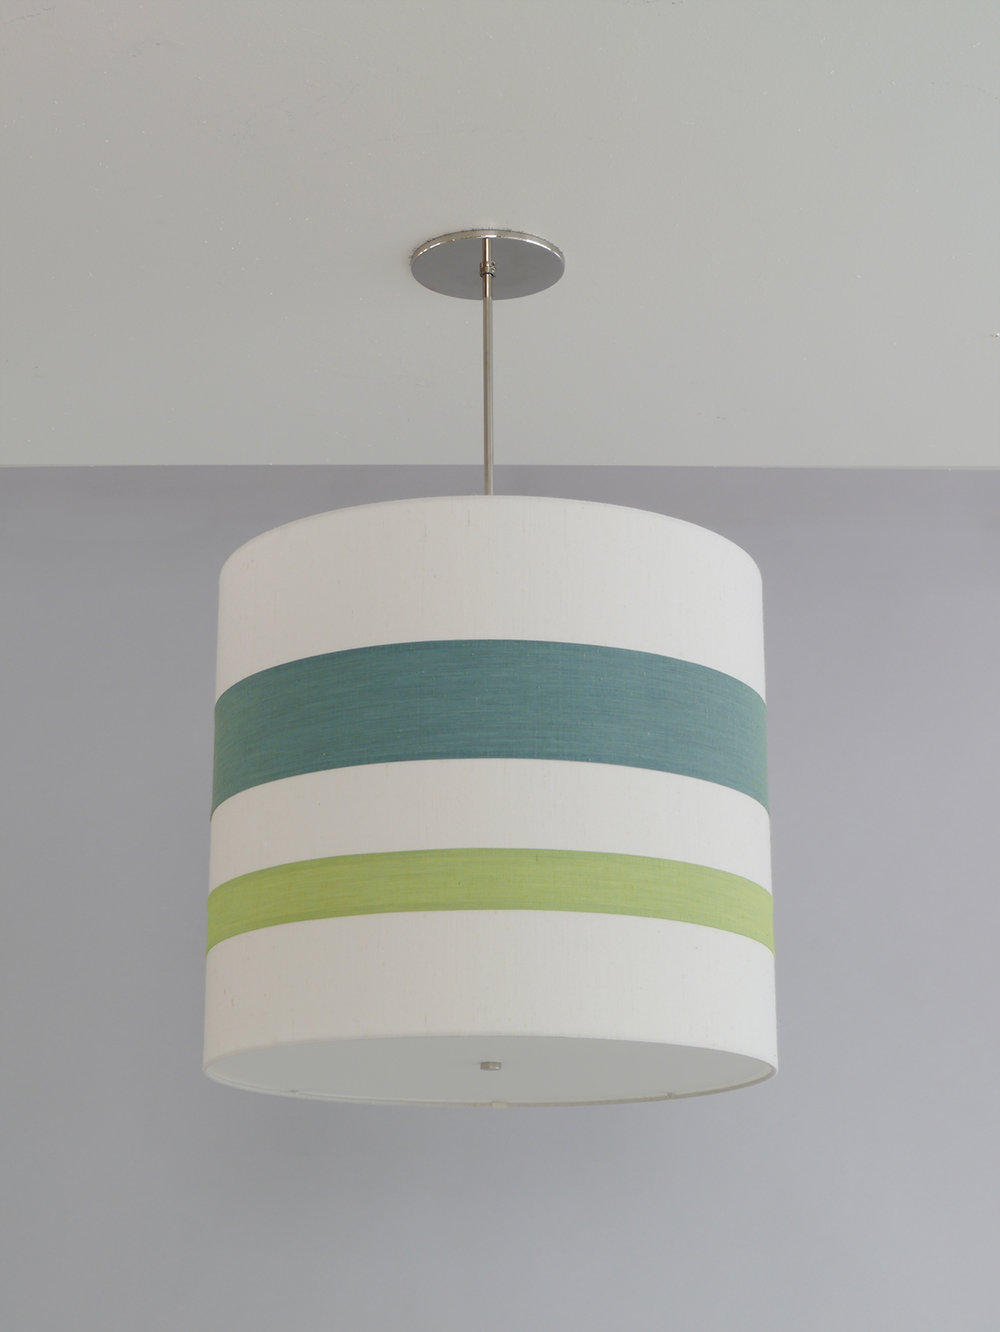 Striped_C-119_Double+Stripe+Drum+Pendant_Satin+Nickel-Greens+and+White.jpg